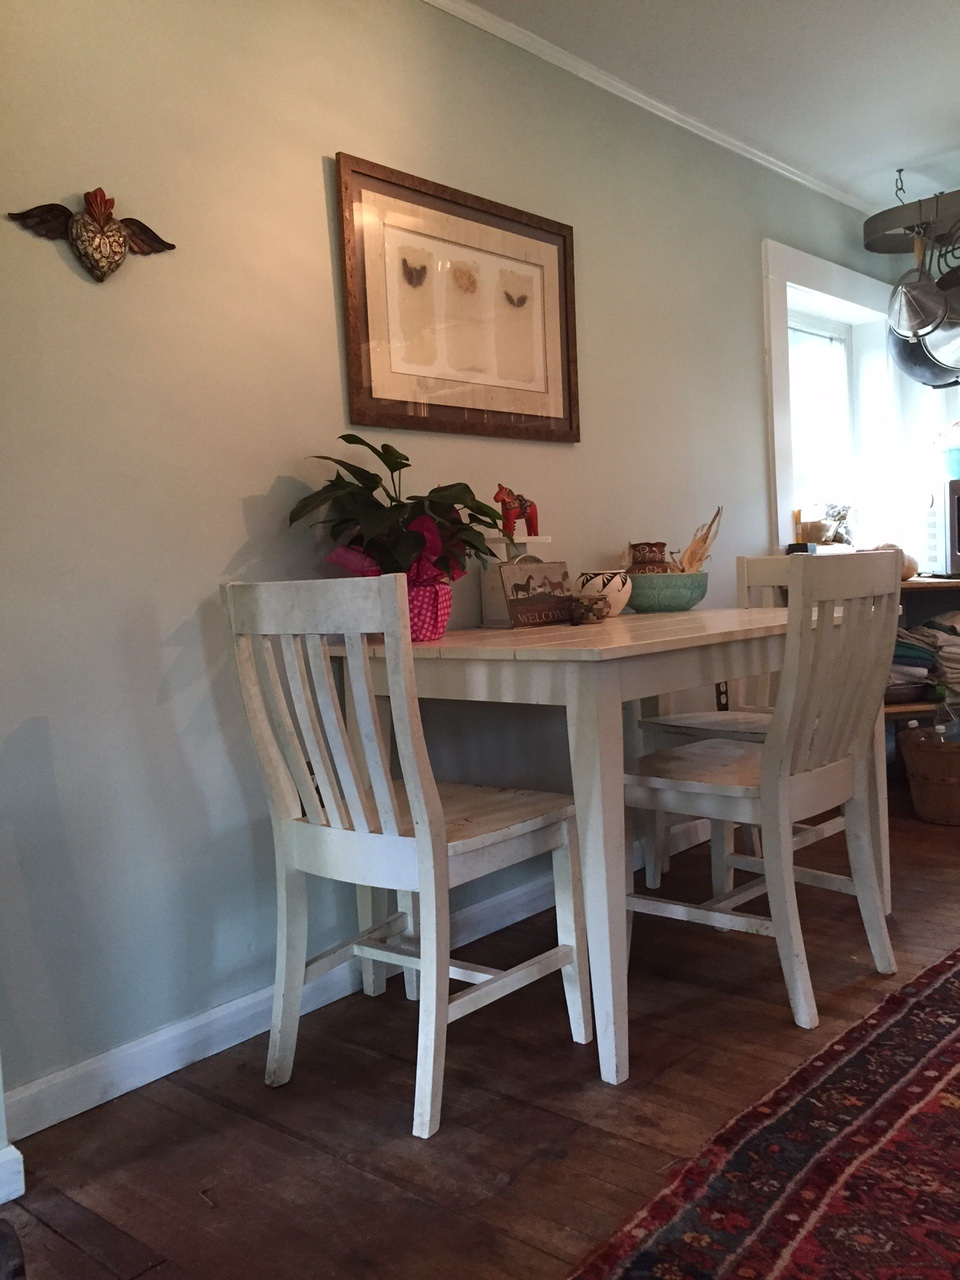 The dining nook in the eat-in kitchen